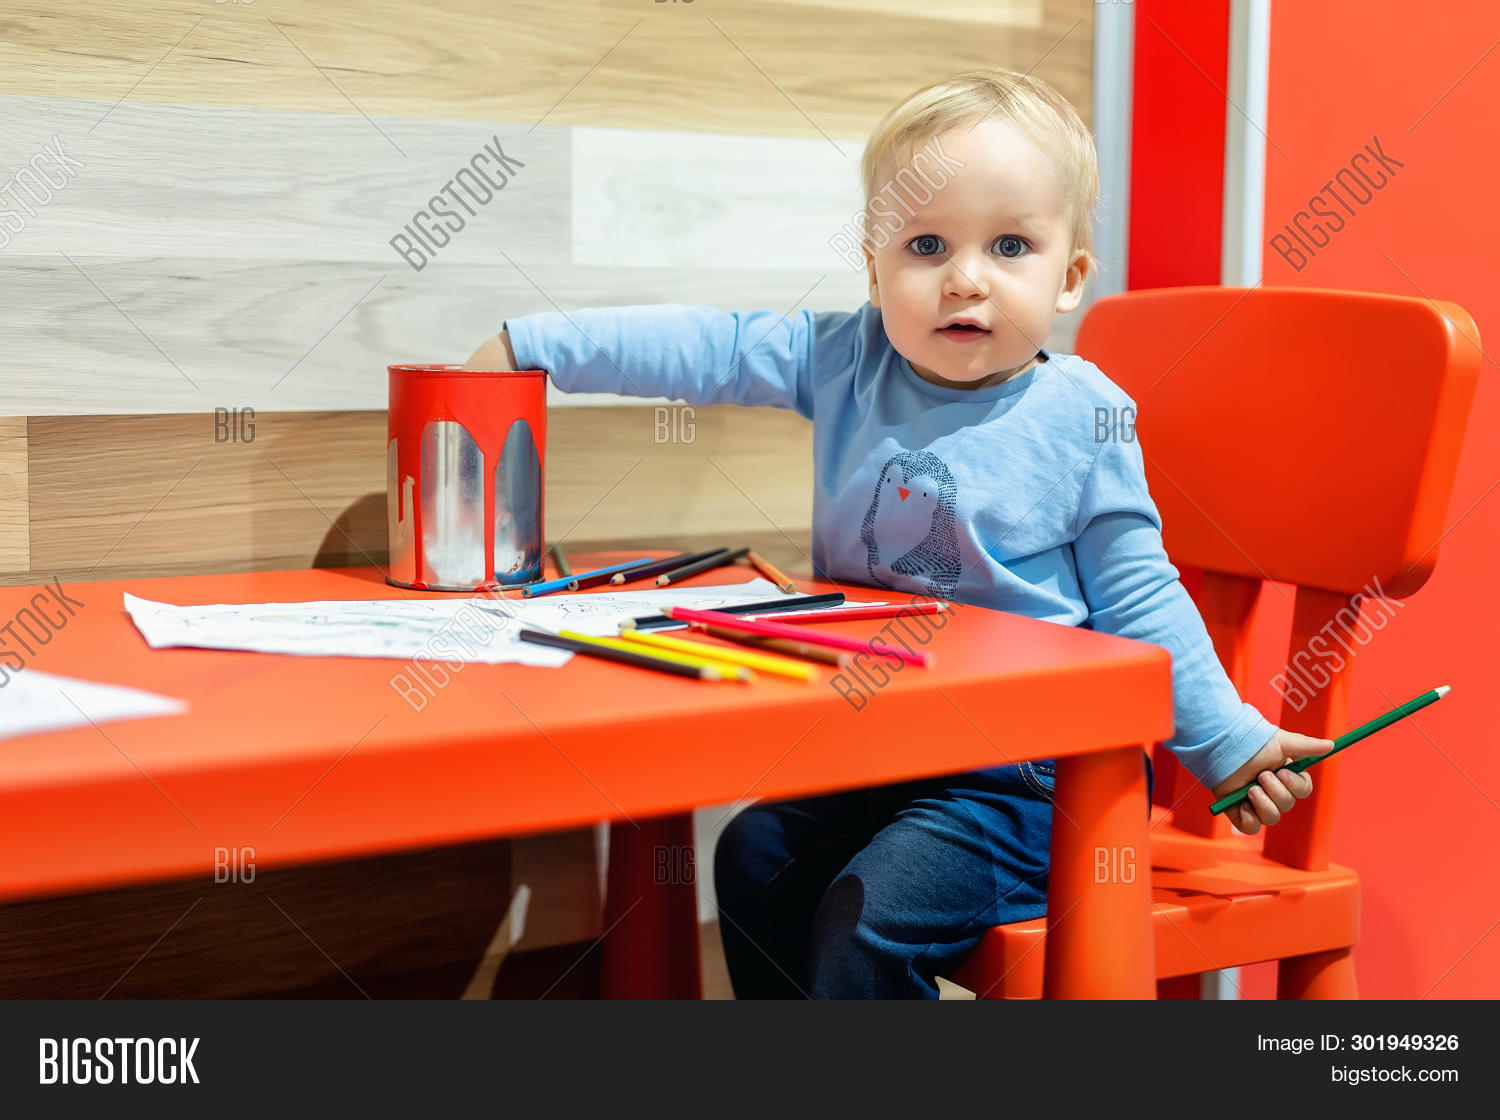 activity,area,baby,blond,boy,business,can,care,casual,caucasian,center,child,childhood,children,clothing,color,colorful,corner,cute,drawing,enjoy,entertainment,family,fashion,fun,happy,hyermarket,indoor,interior,kid,little,mall,paint,pencil,people,plastic,play,playground,red,retail,sale,school,shop,shopping,smile,store,table,toddler,young,zone